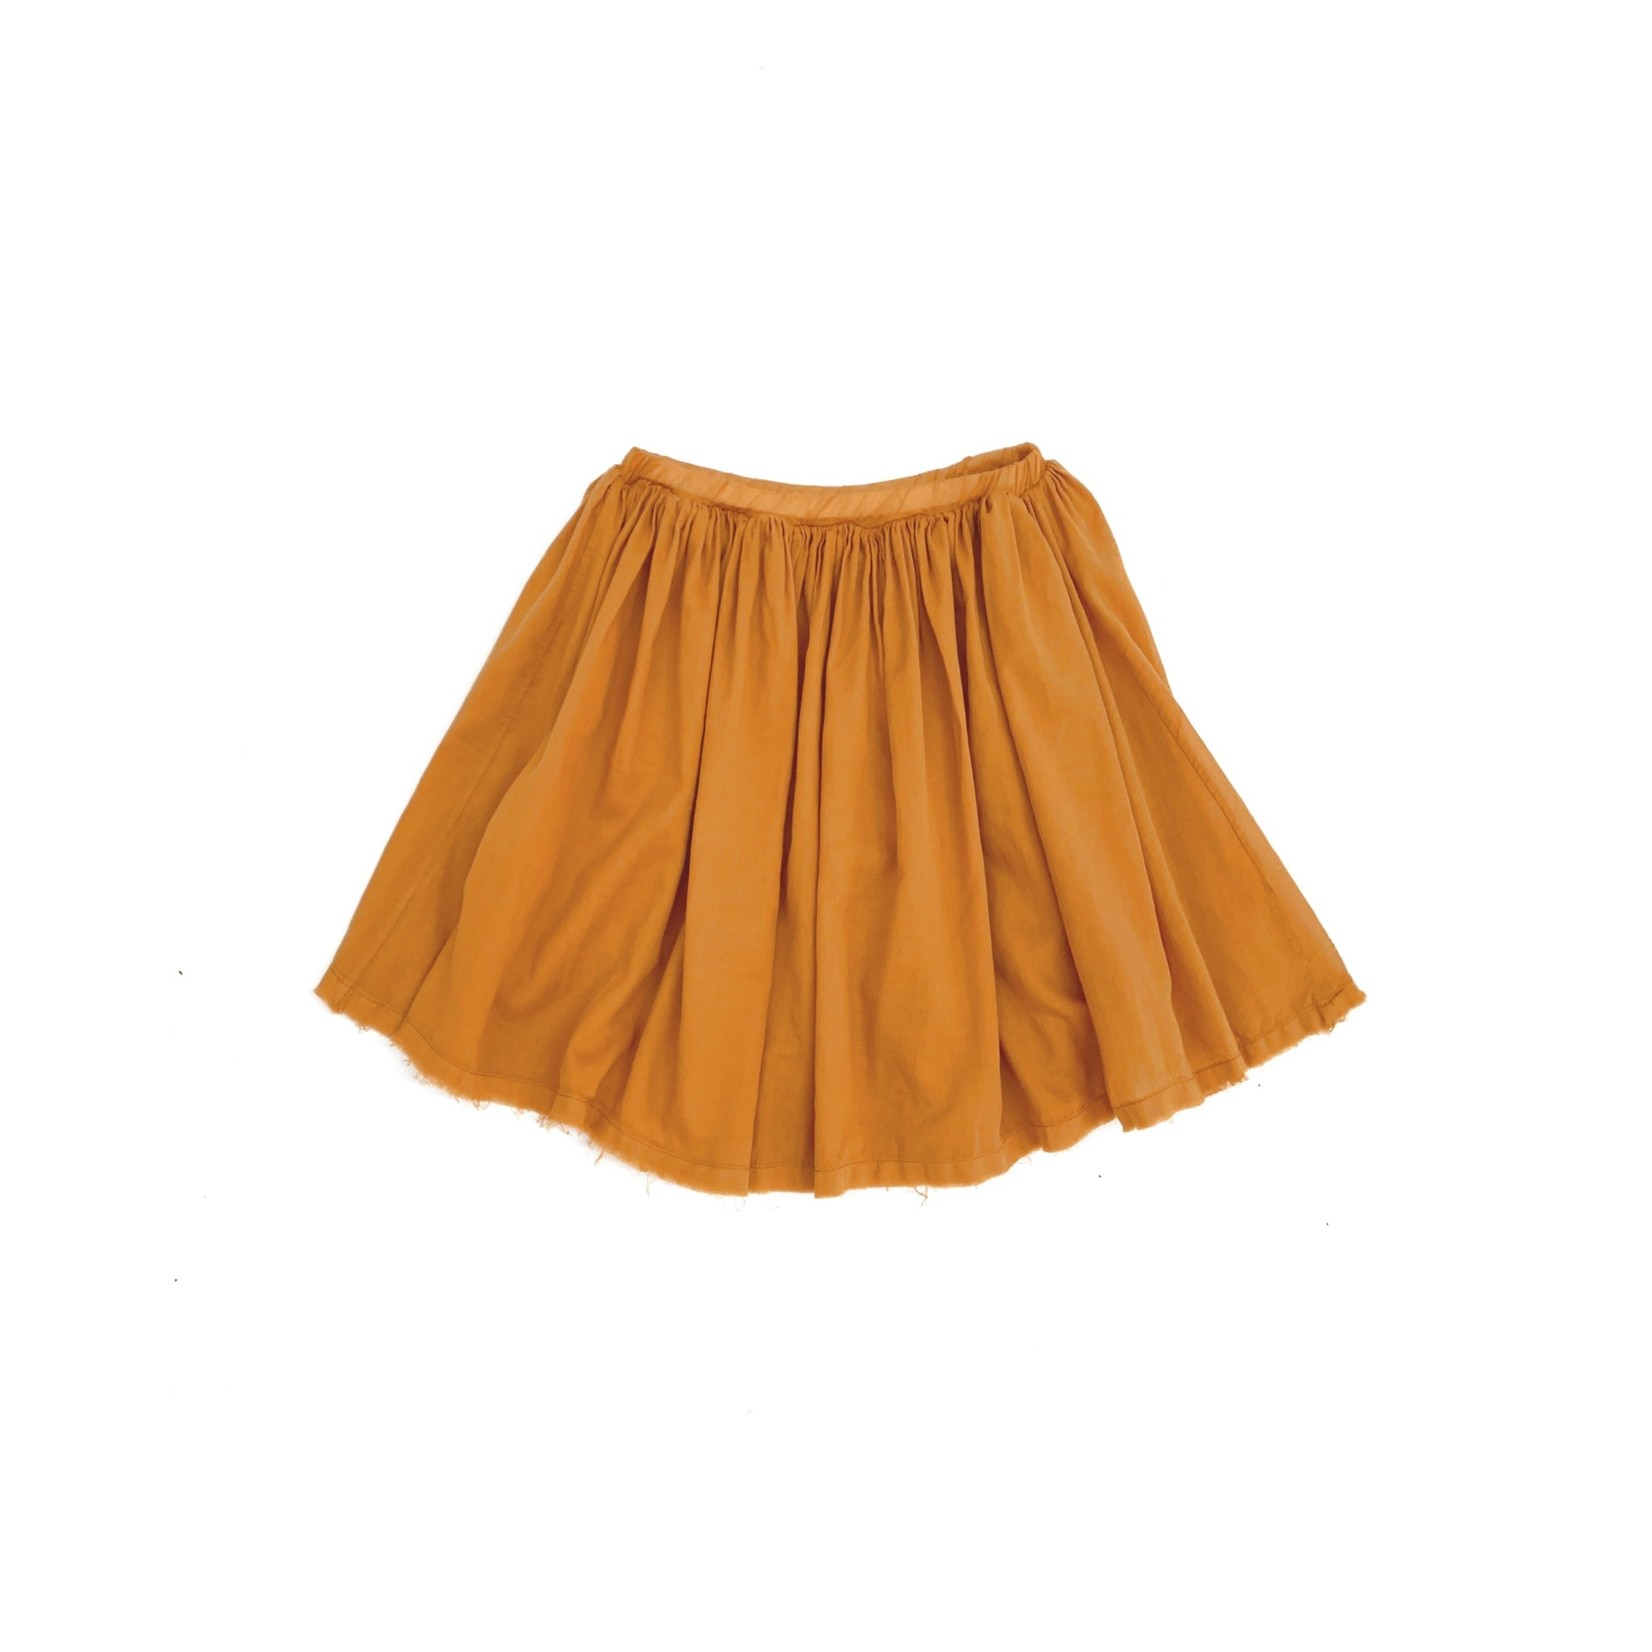 LONG LIVE THE QUEEN Long live the queen voile skirt